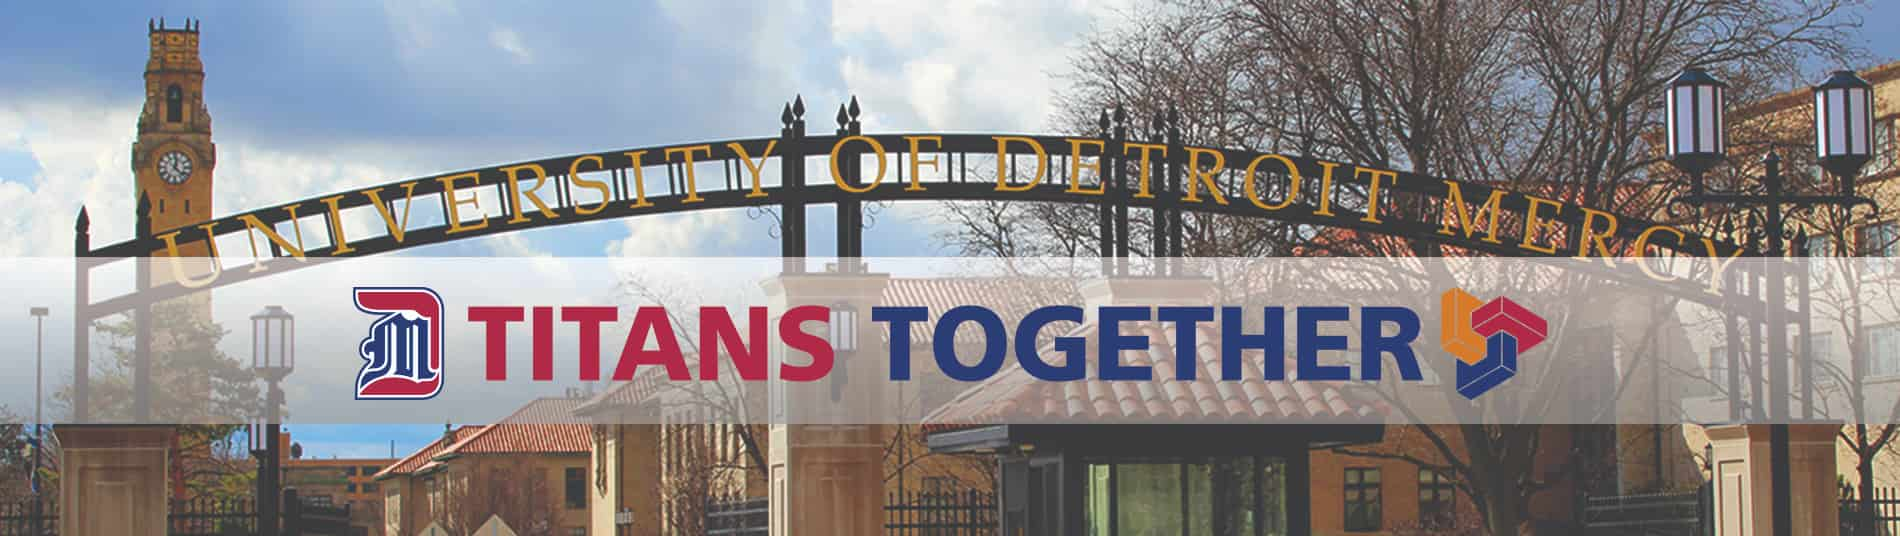 Phased Return - Titans Together - McNichols Campus gate